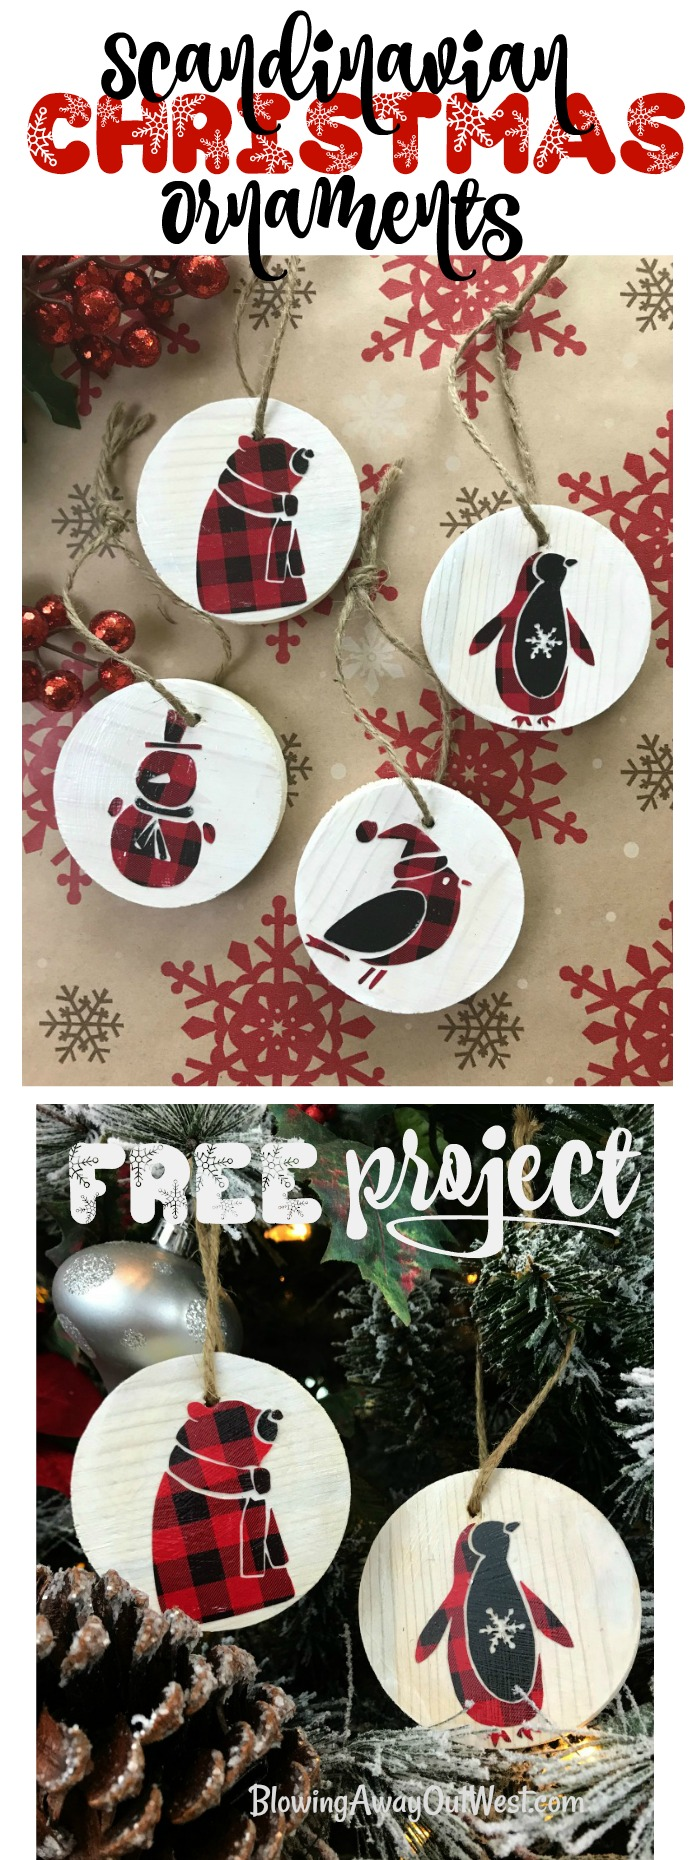 Scandinavian Wood Ornaments : Buffalo Check Ornaments | blowingawayoutwest.com - DIY Buffalo check and wooden Scandinavian Woodland Friends Christmas Tree Ornaments #scandinavianchristmas #christmascraft #buffalocheckchristmastree #buffalocheckchristmas #buffalocheckdiy #diyornaments #12daysofChristmas